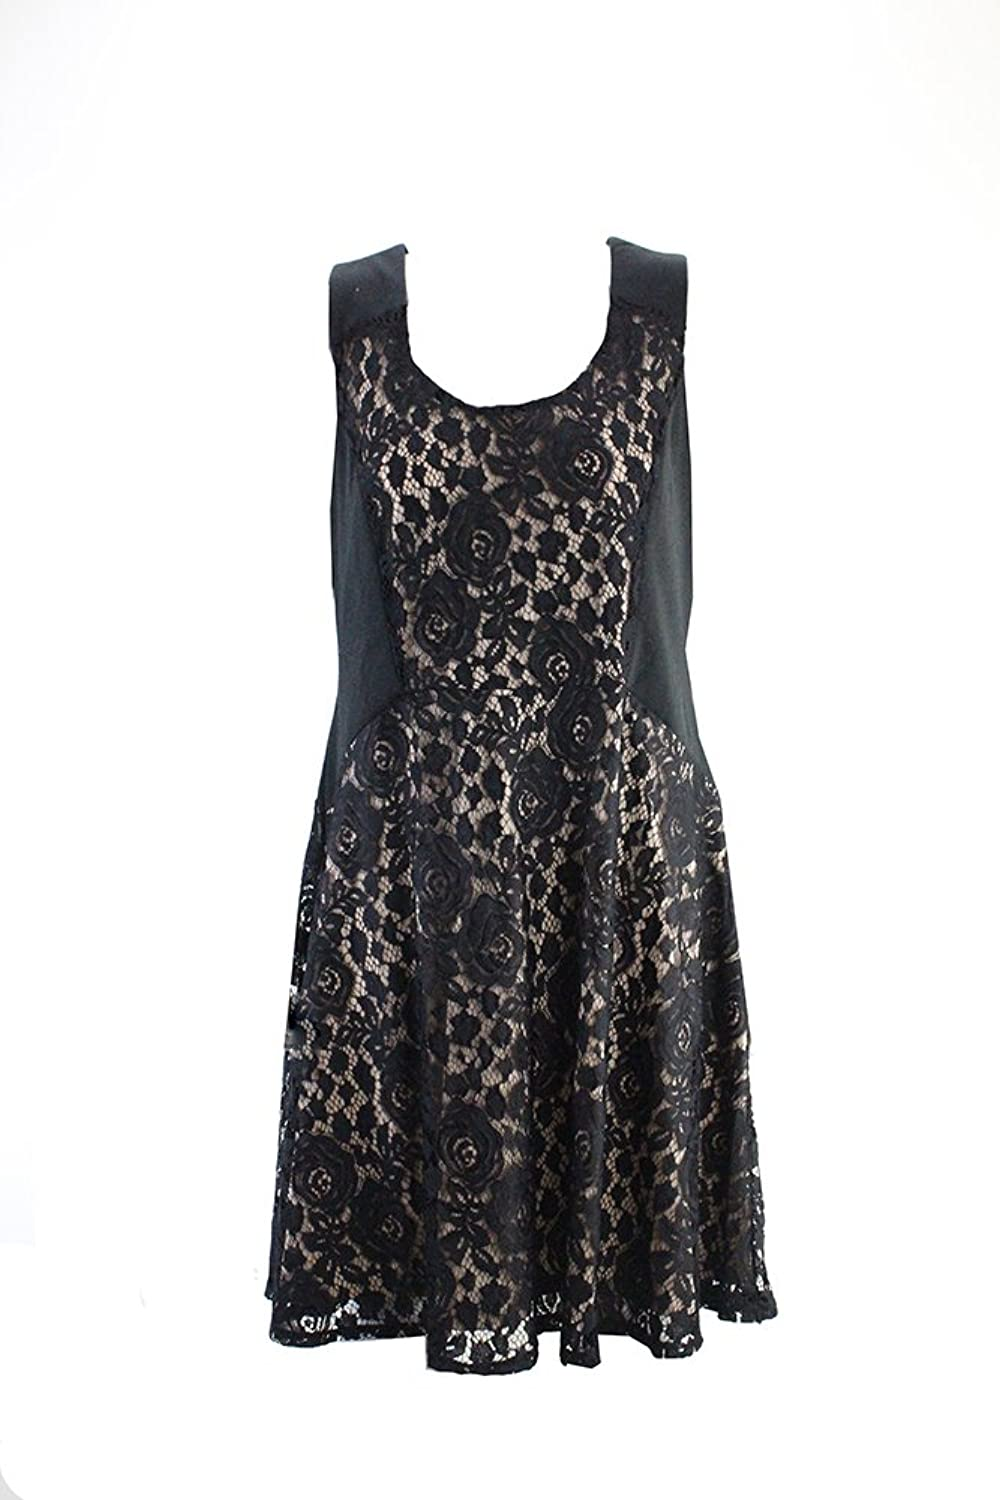 NY Collection Black Lace A-Line Dress Xl